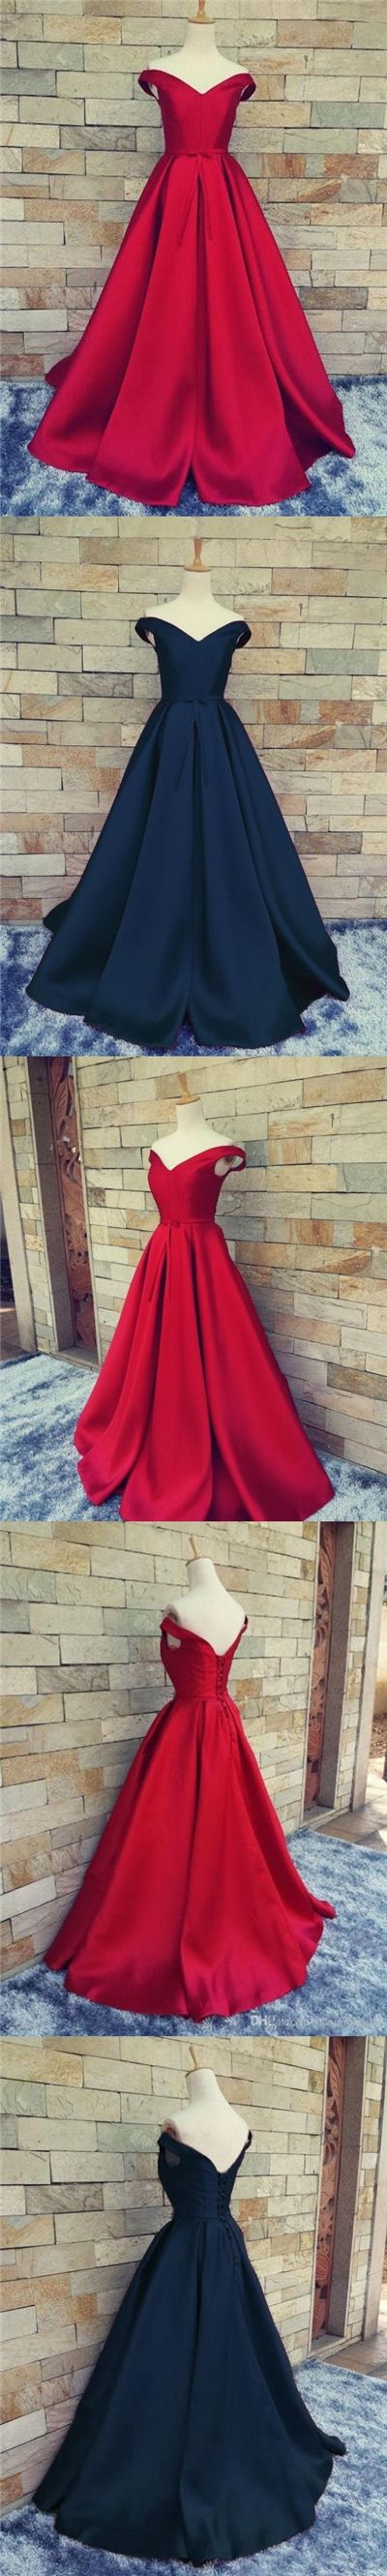 Cheap Prom Dresses Ball Gown Off-the-shoulder Long Chic Prom Dress/Evening Dress JKL293#Burgundy #navy #Ballgown #gowns #dance #longpromdress #promdress #prom #fashion #style #bowknot #dress #prom